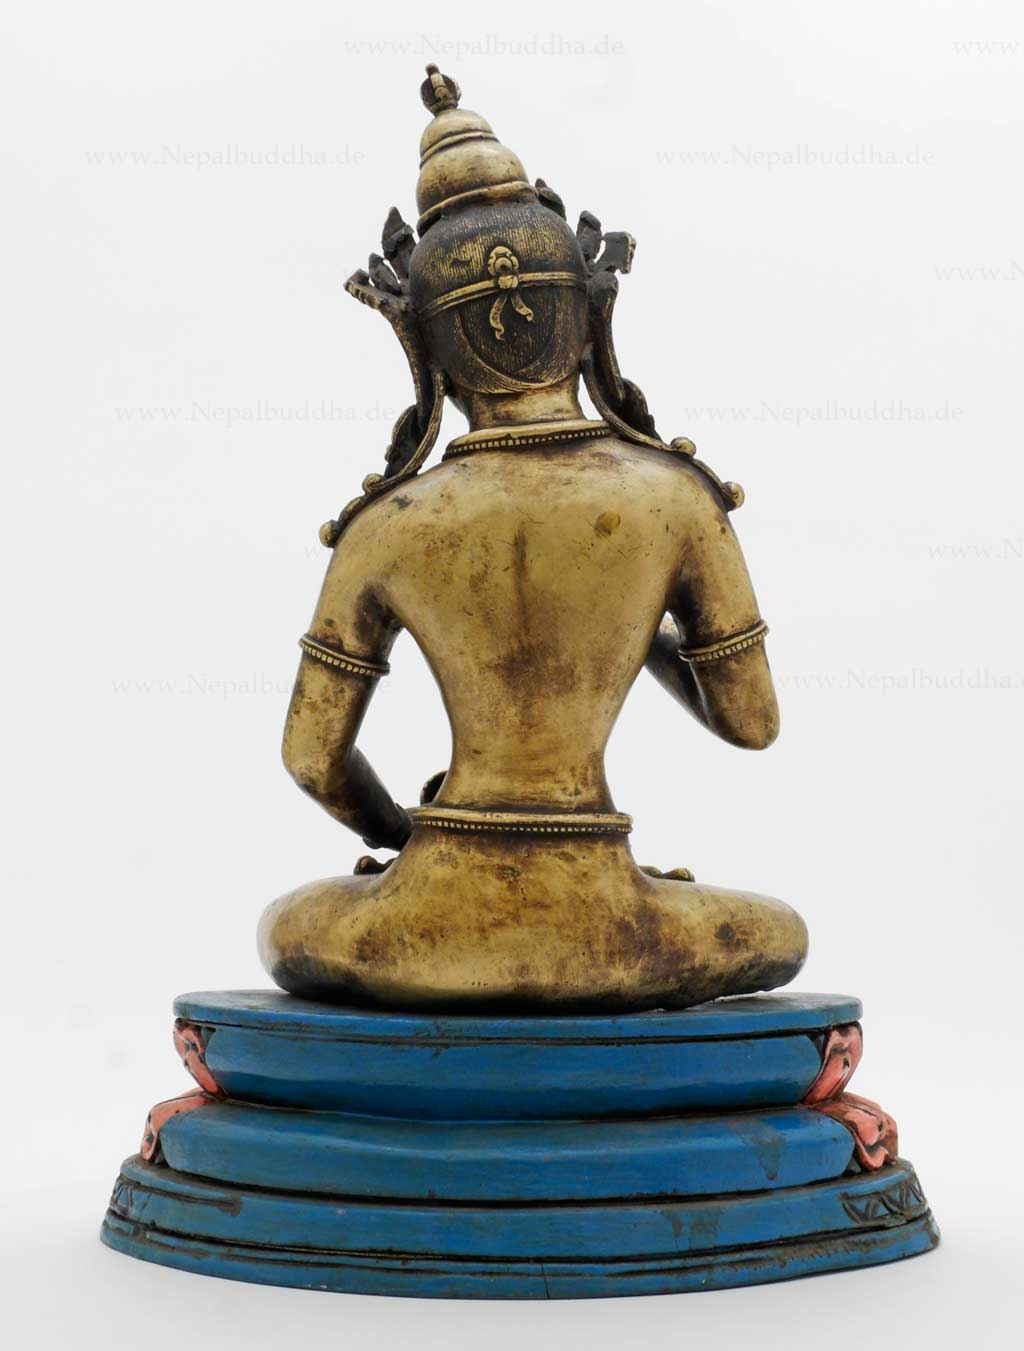 vajrasattva dorje sempa bronze kg figurine art statue sculpture asia tibet ebay. Black Bedroom Furniture Sets. Home Design Ideas